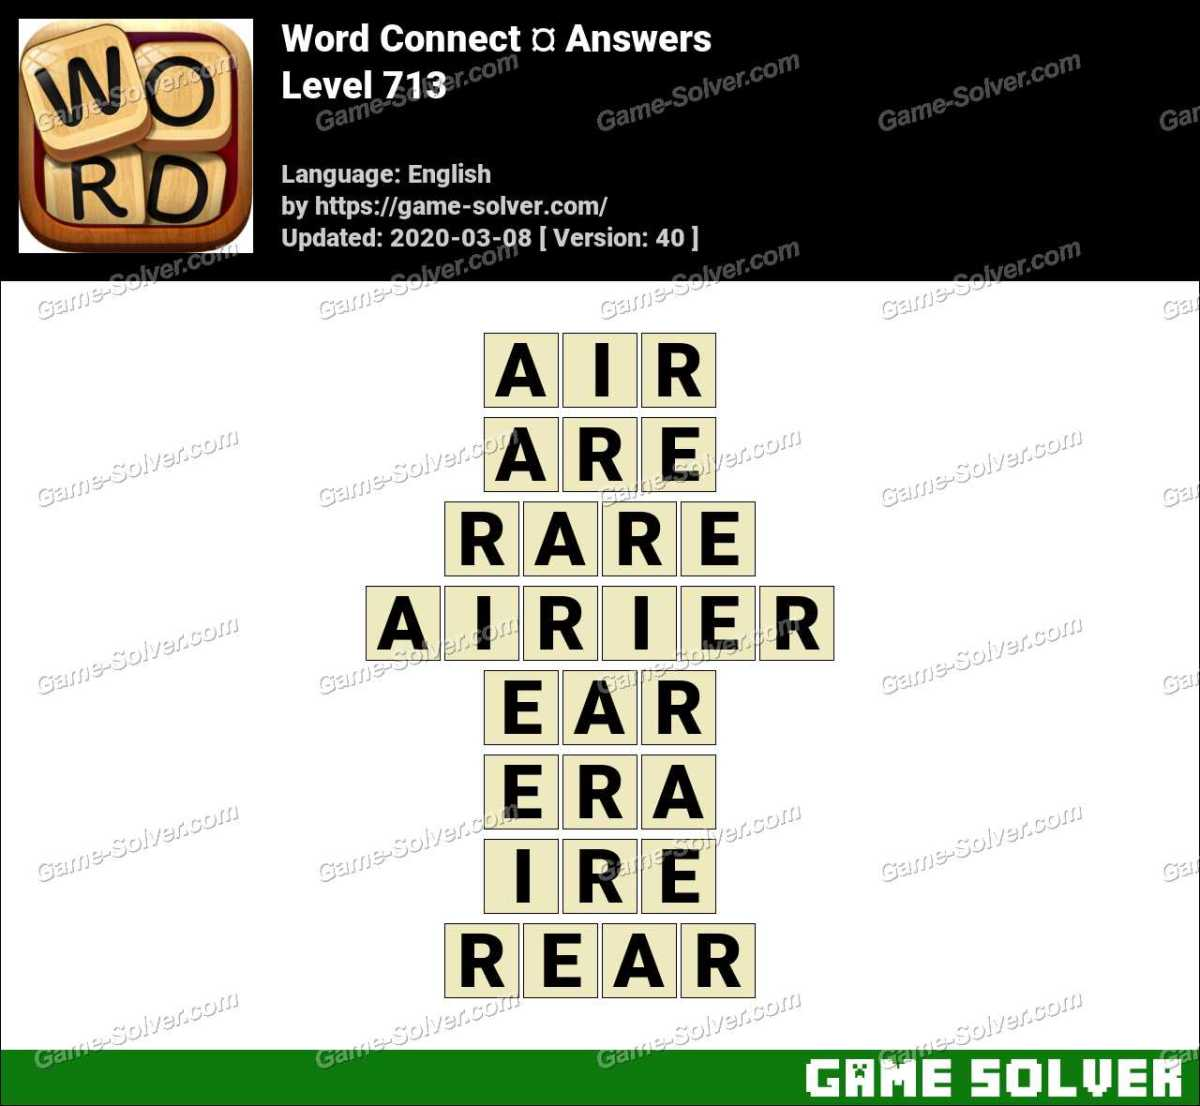 Word Connect Level 713 Answers